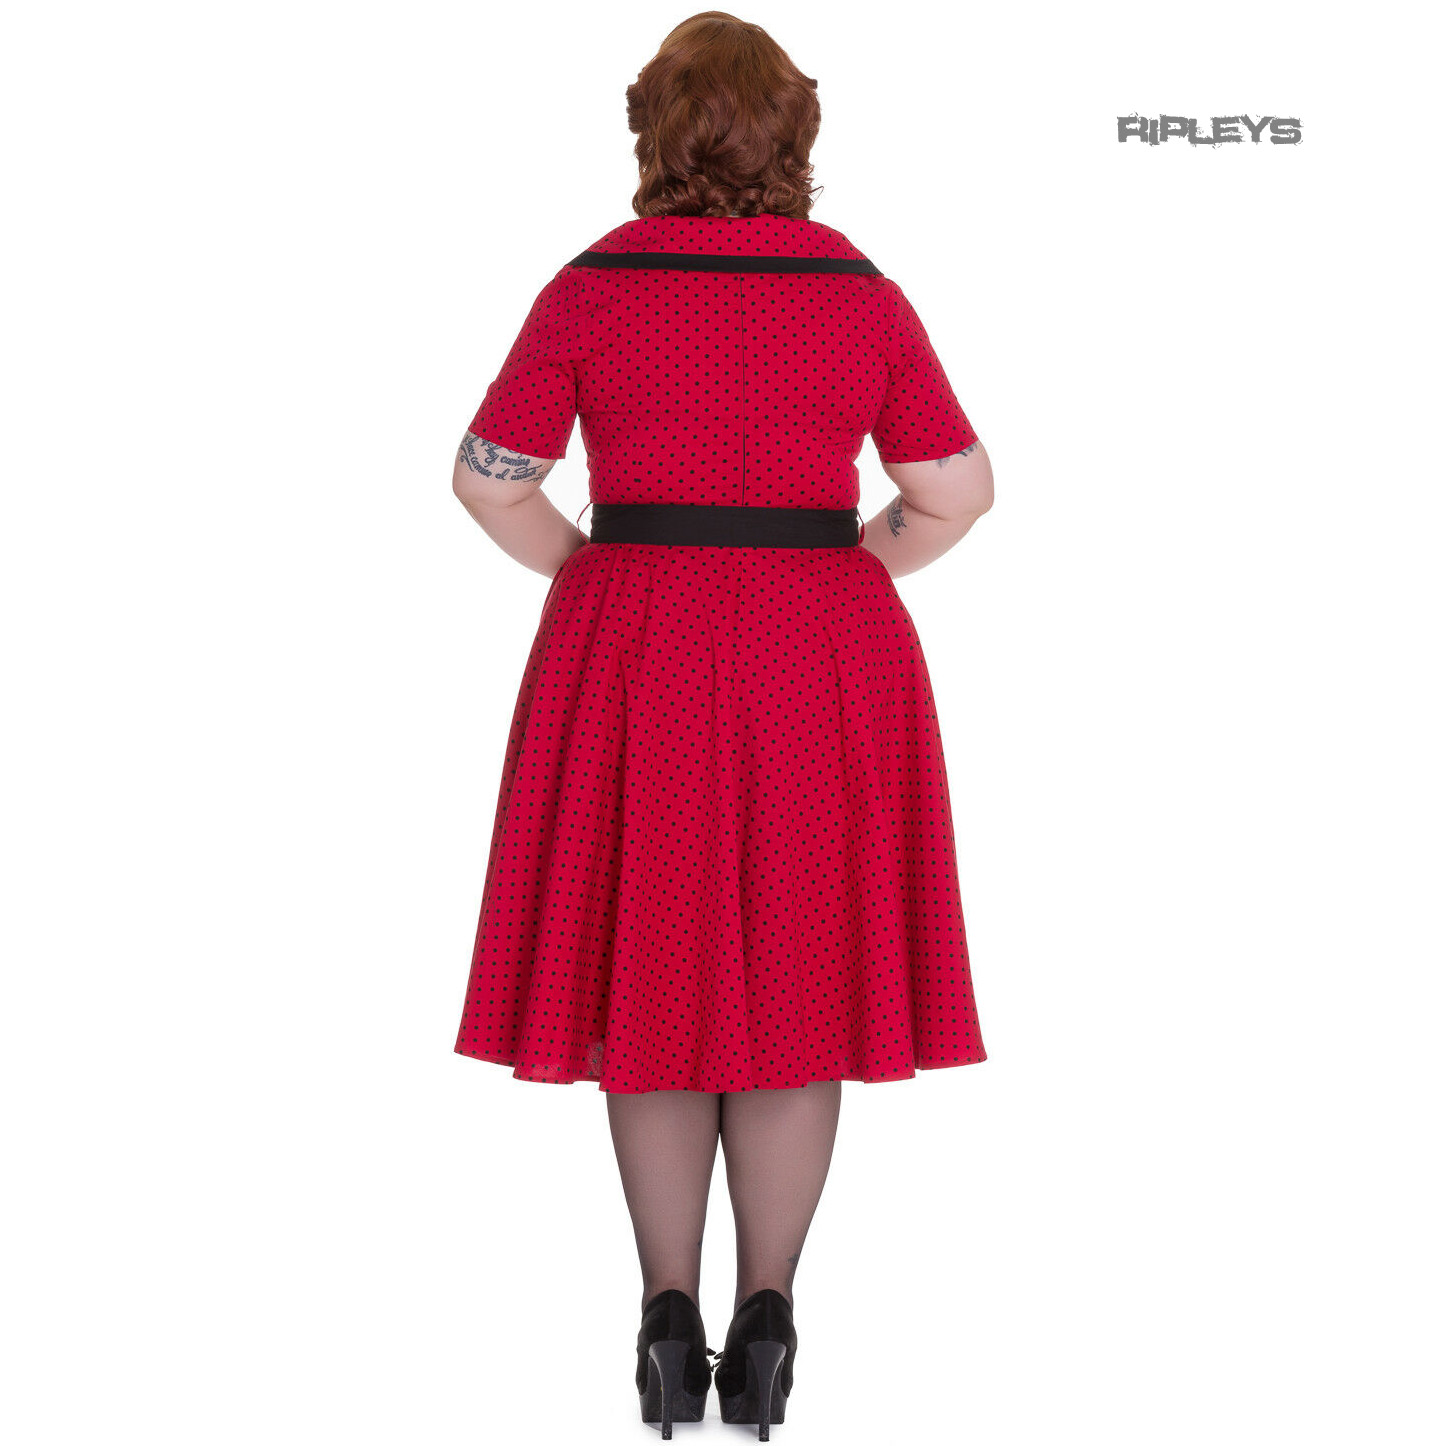 Hell-Bunny-40s-50s-Pin-Up-Swing-Dress-MIMI-Polka-Dot-Black-Red-All-Sizes thumbnail 12